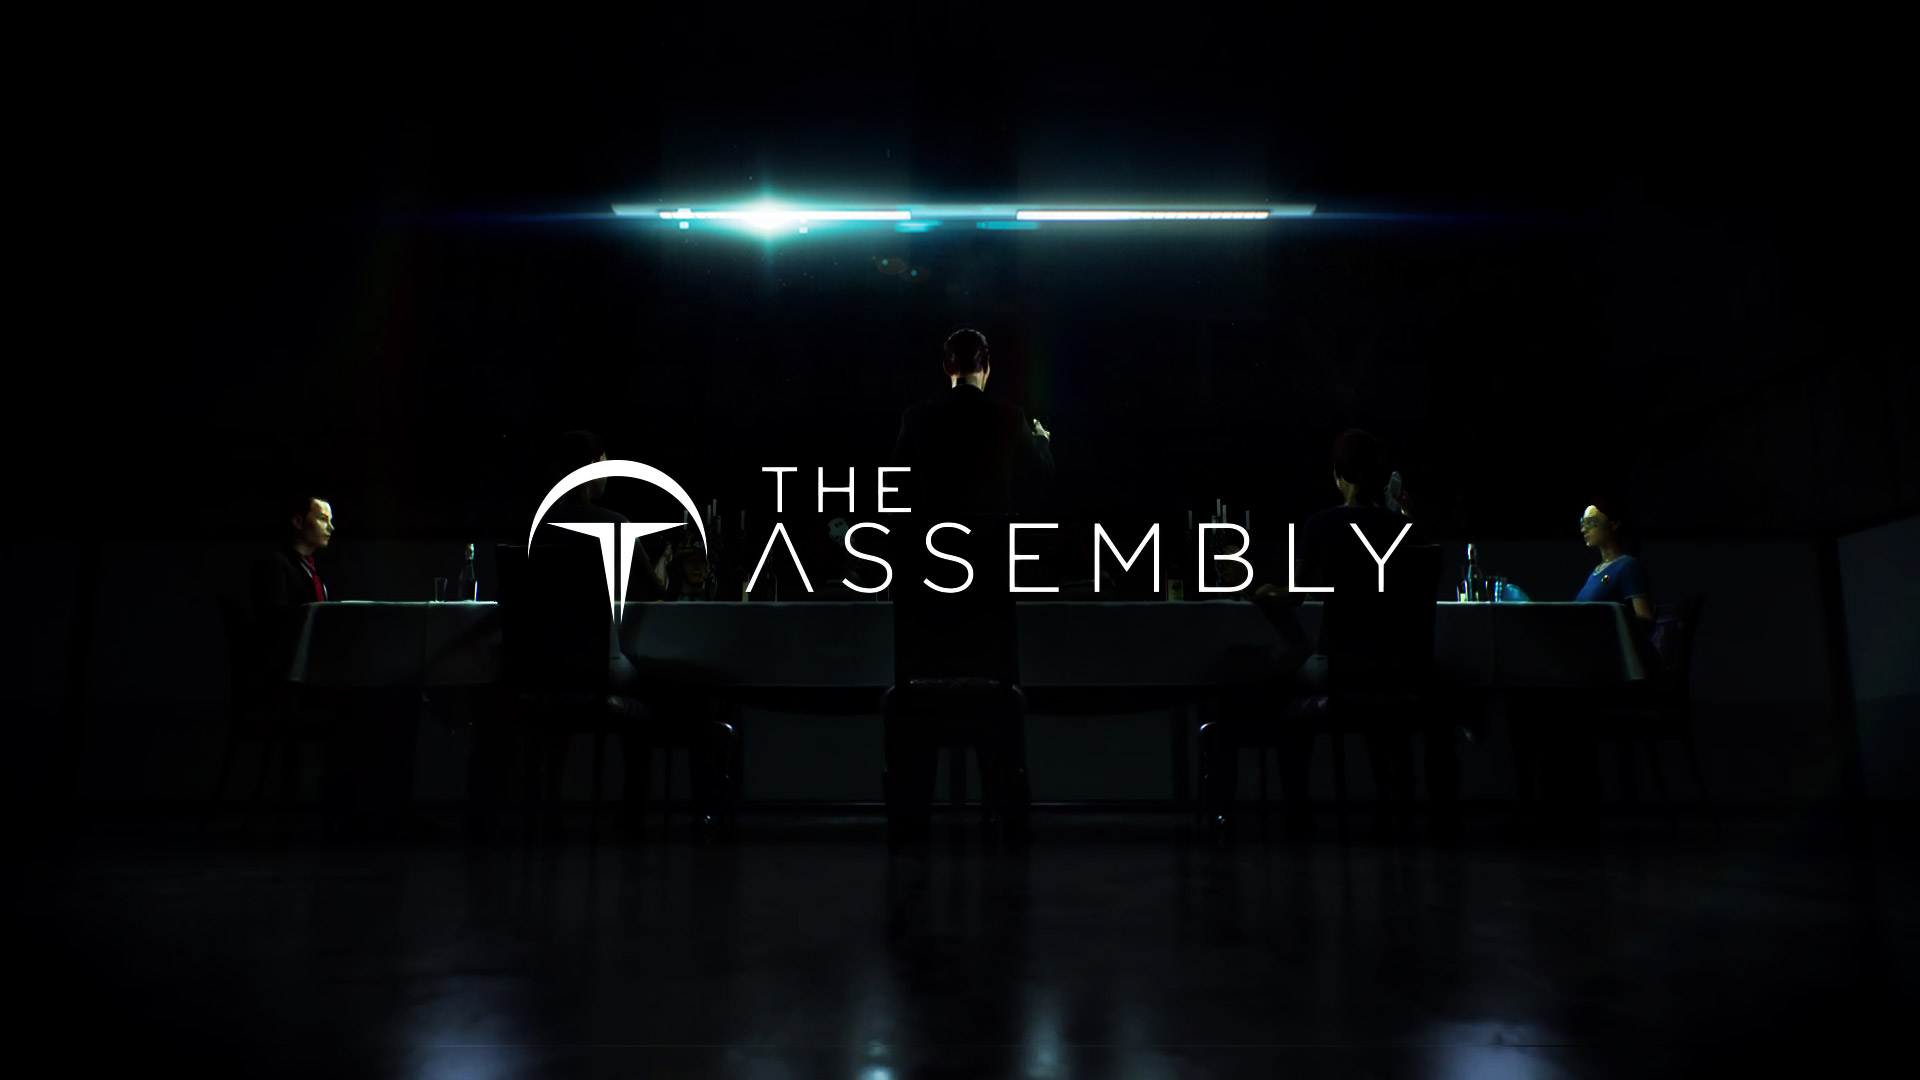 The Assembly Wallpaper in 1920x1080